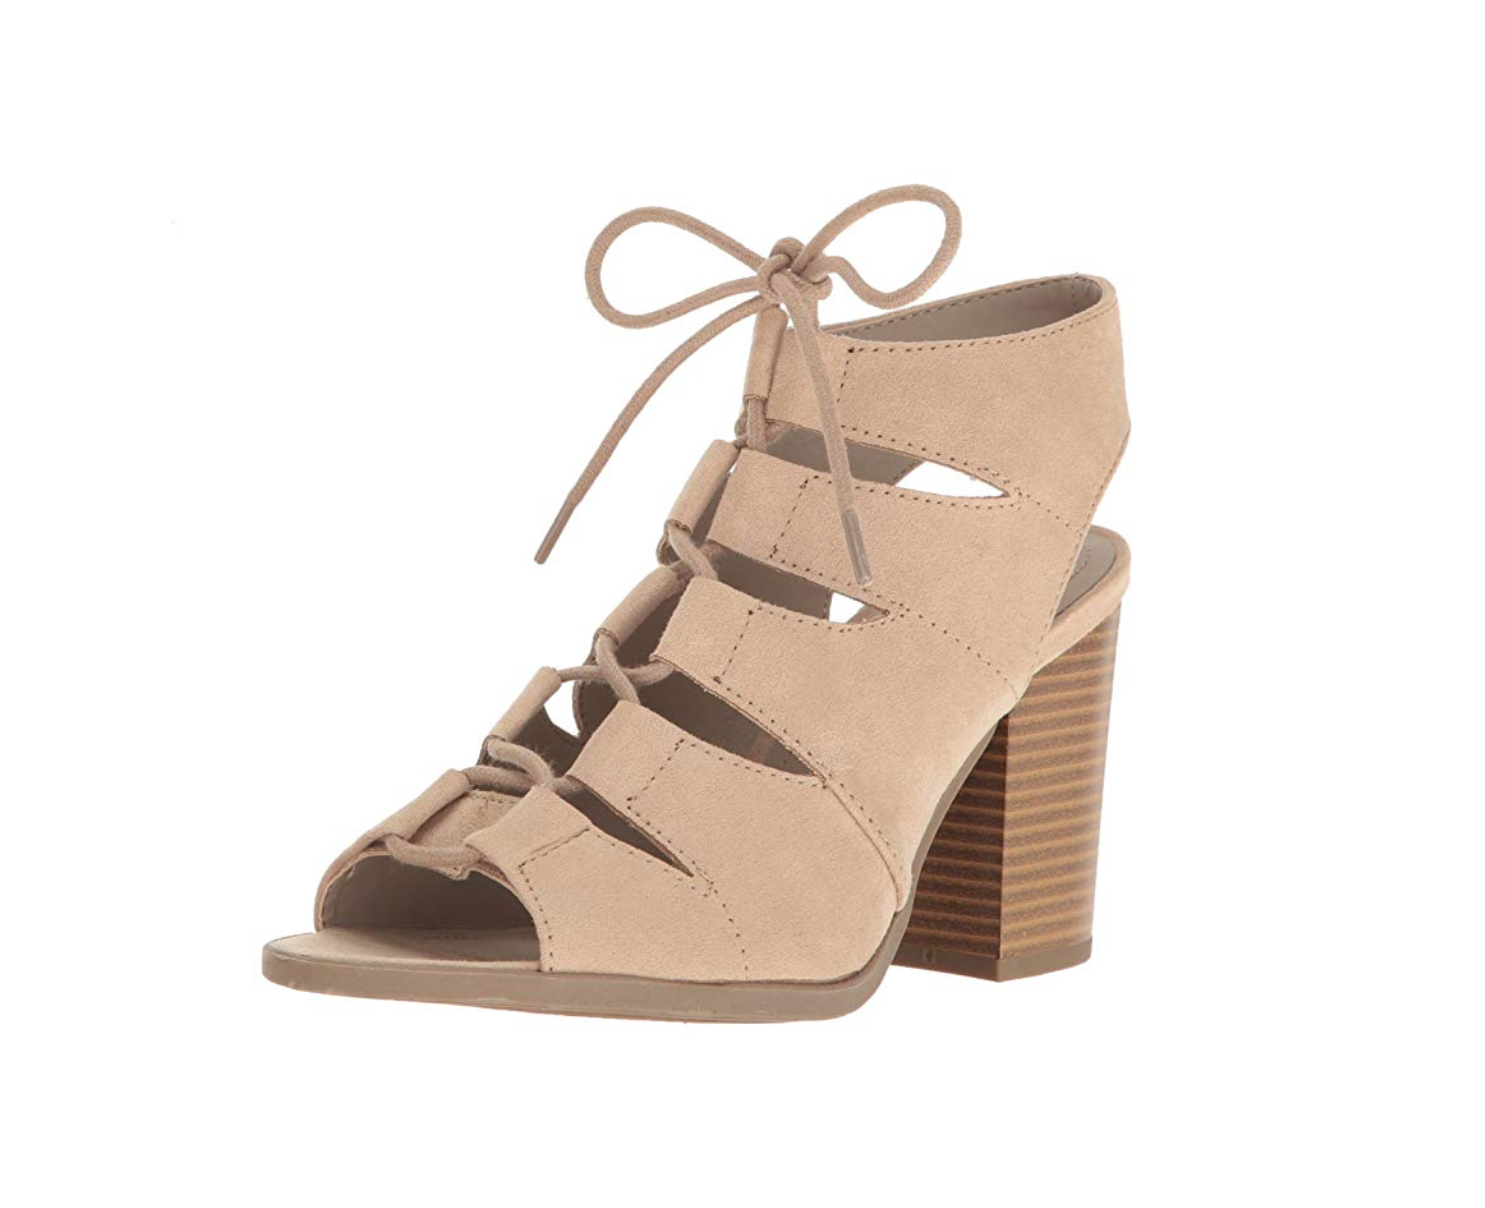 RX_1902 Easter Shoes_Rampage Women's Emmie Heeled Sandal